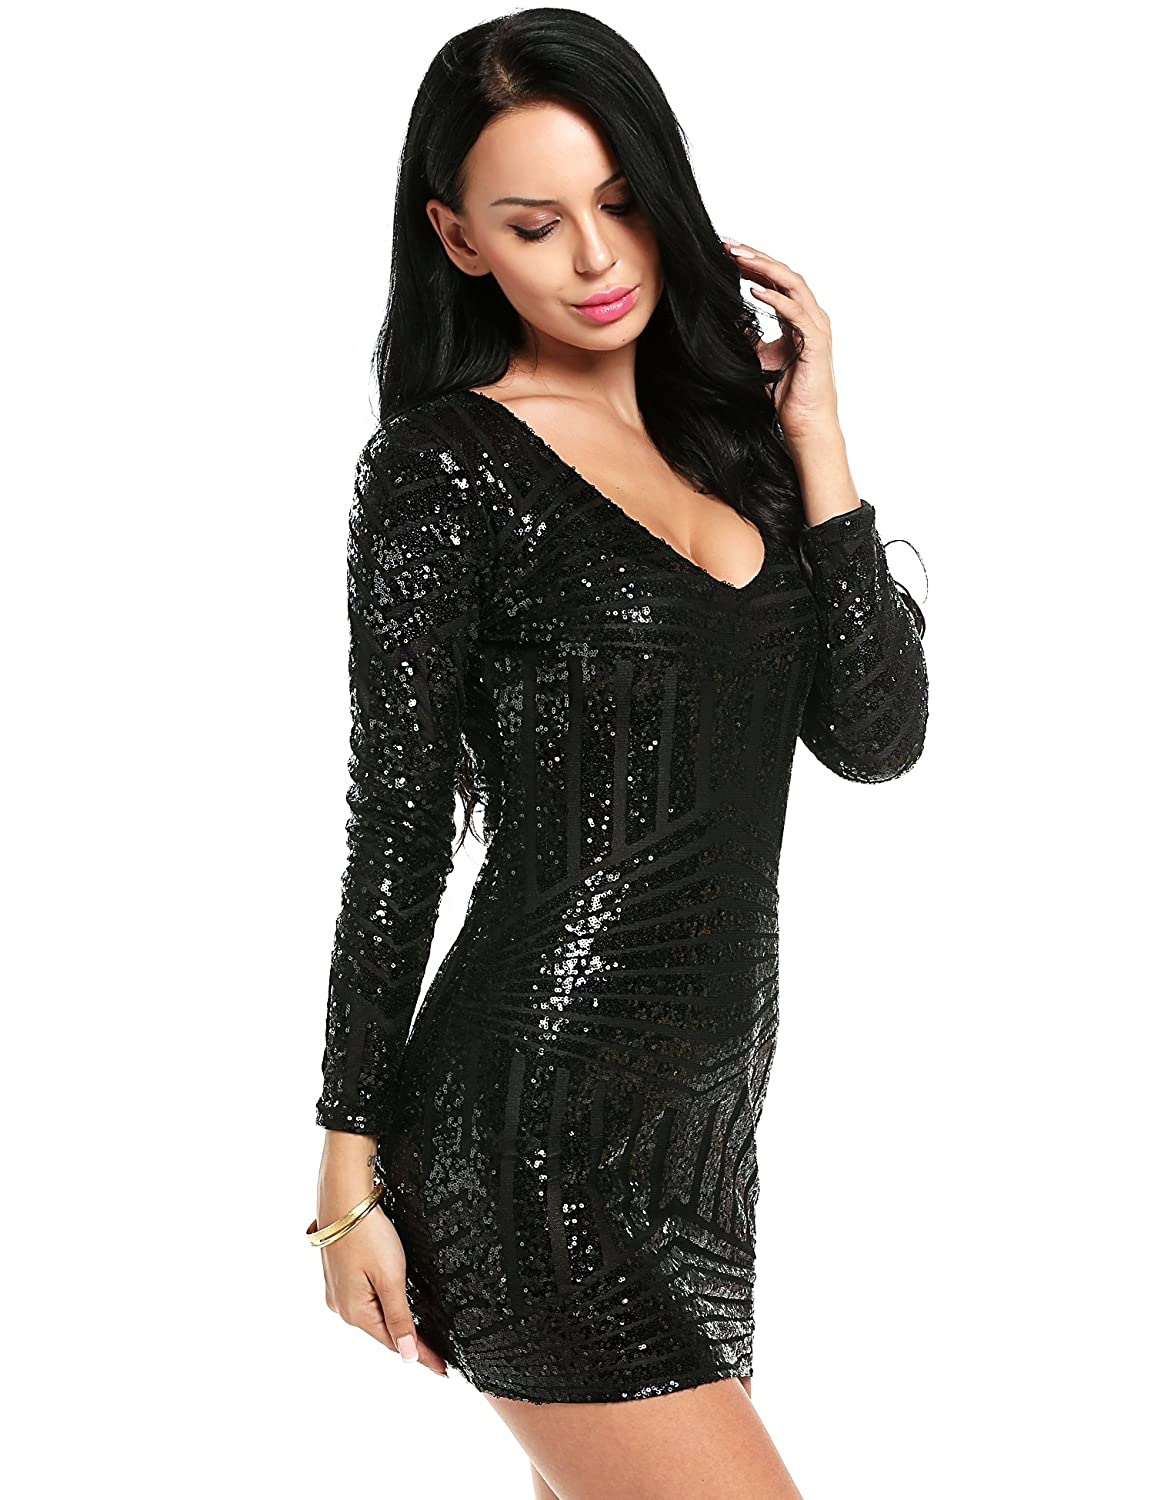 0ce9ce58 Amazon.com: Women Sequin Bodycon Dress V-Neck Long Sleeve sparkly Clubwear  Dress Mini Cocktail Dress: Clothing